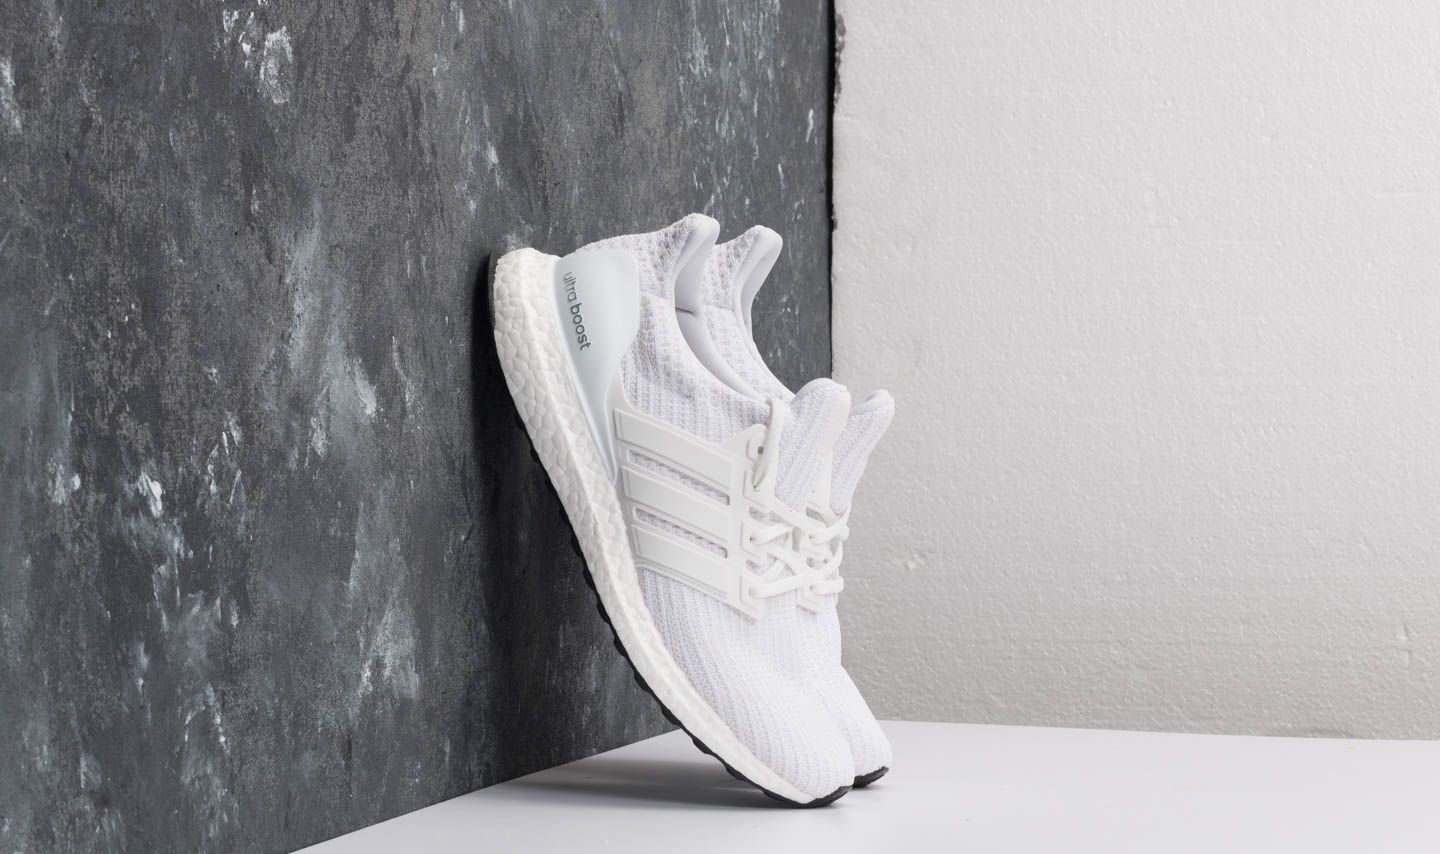 adidas Ultraboost Ftw White/ Ftw White/ Ftw White